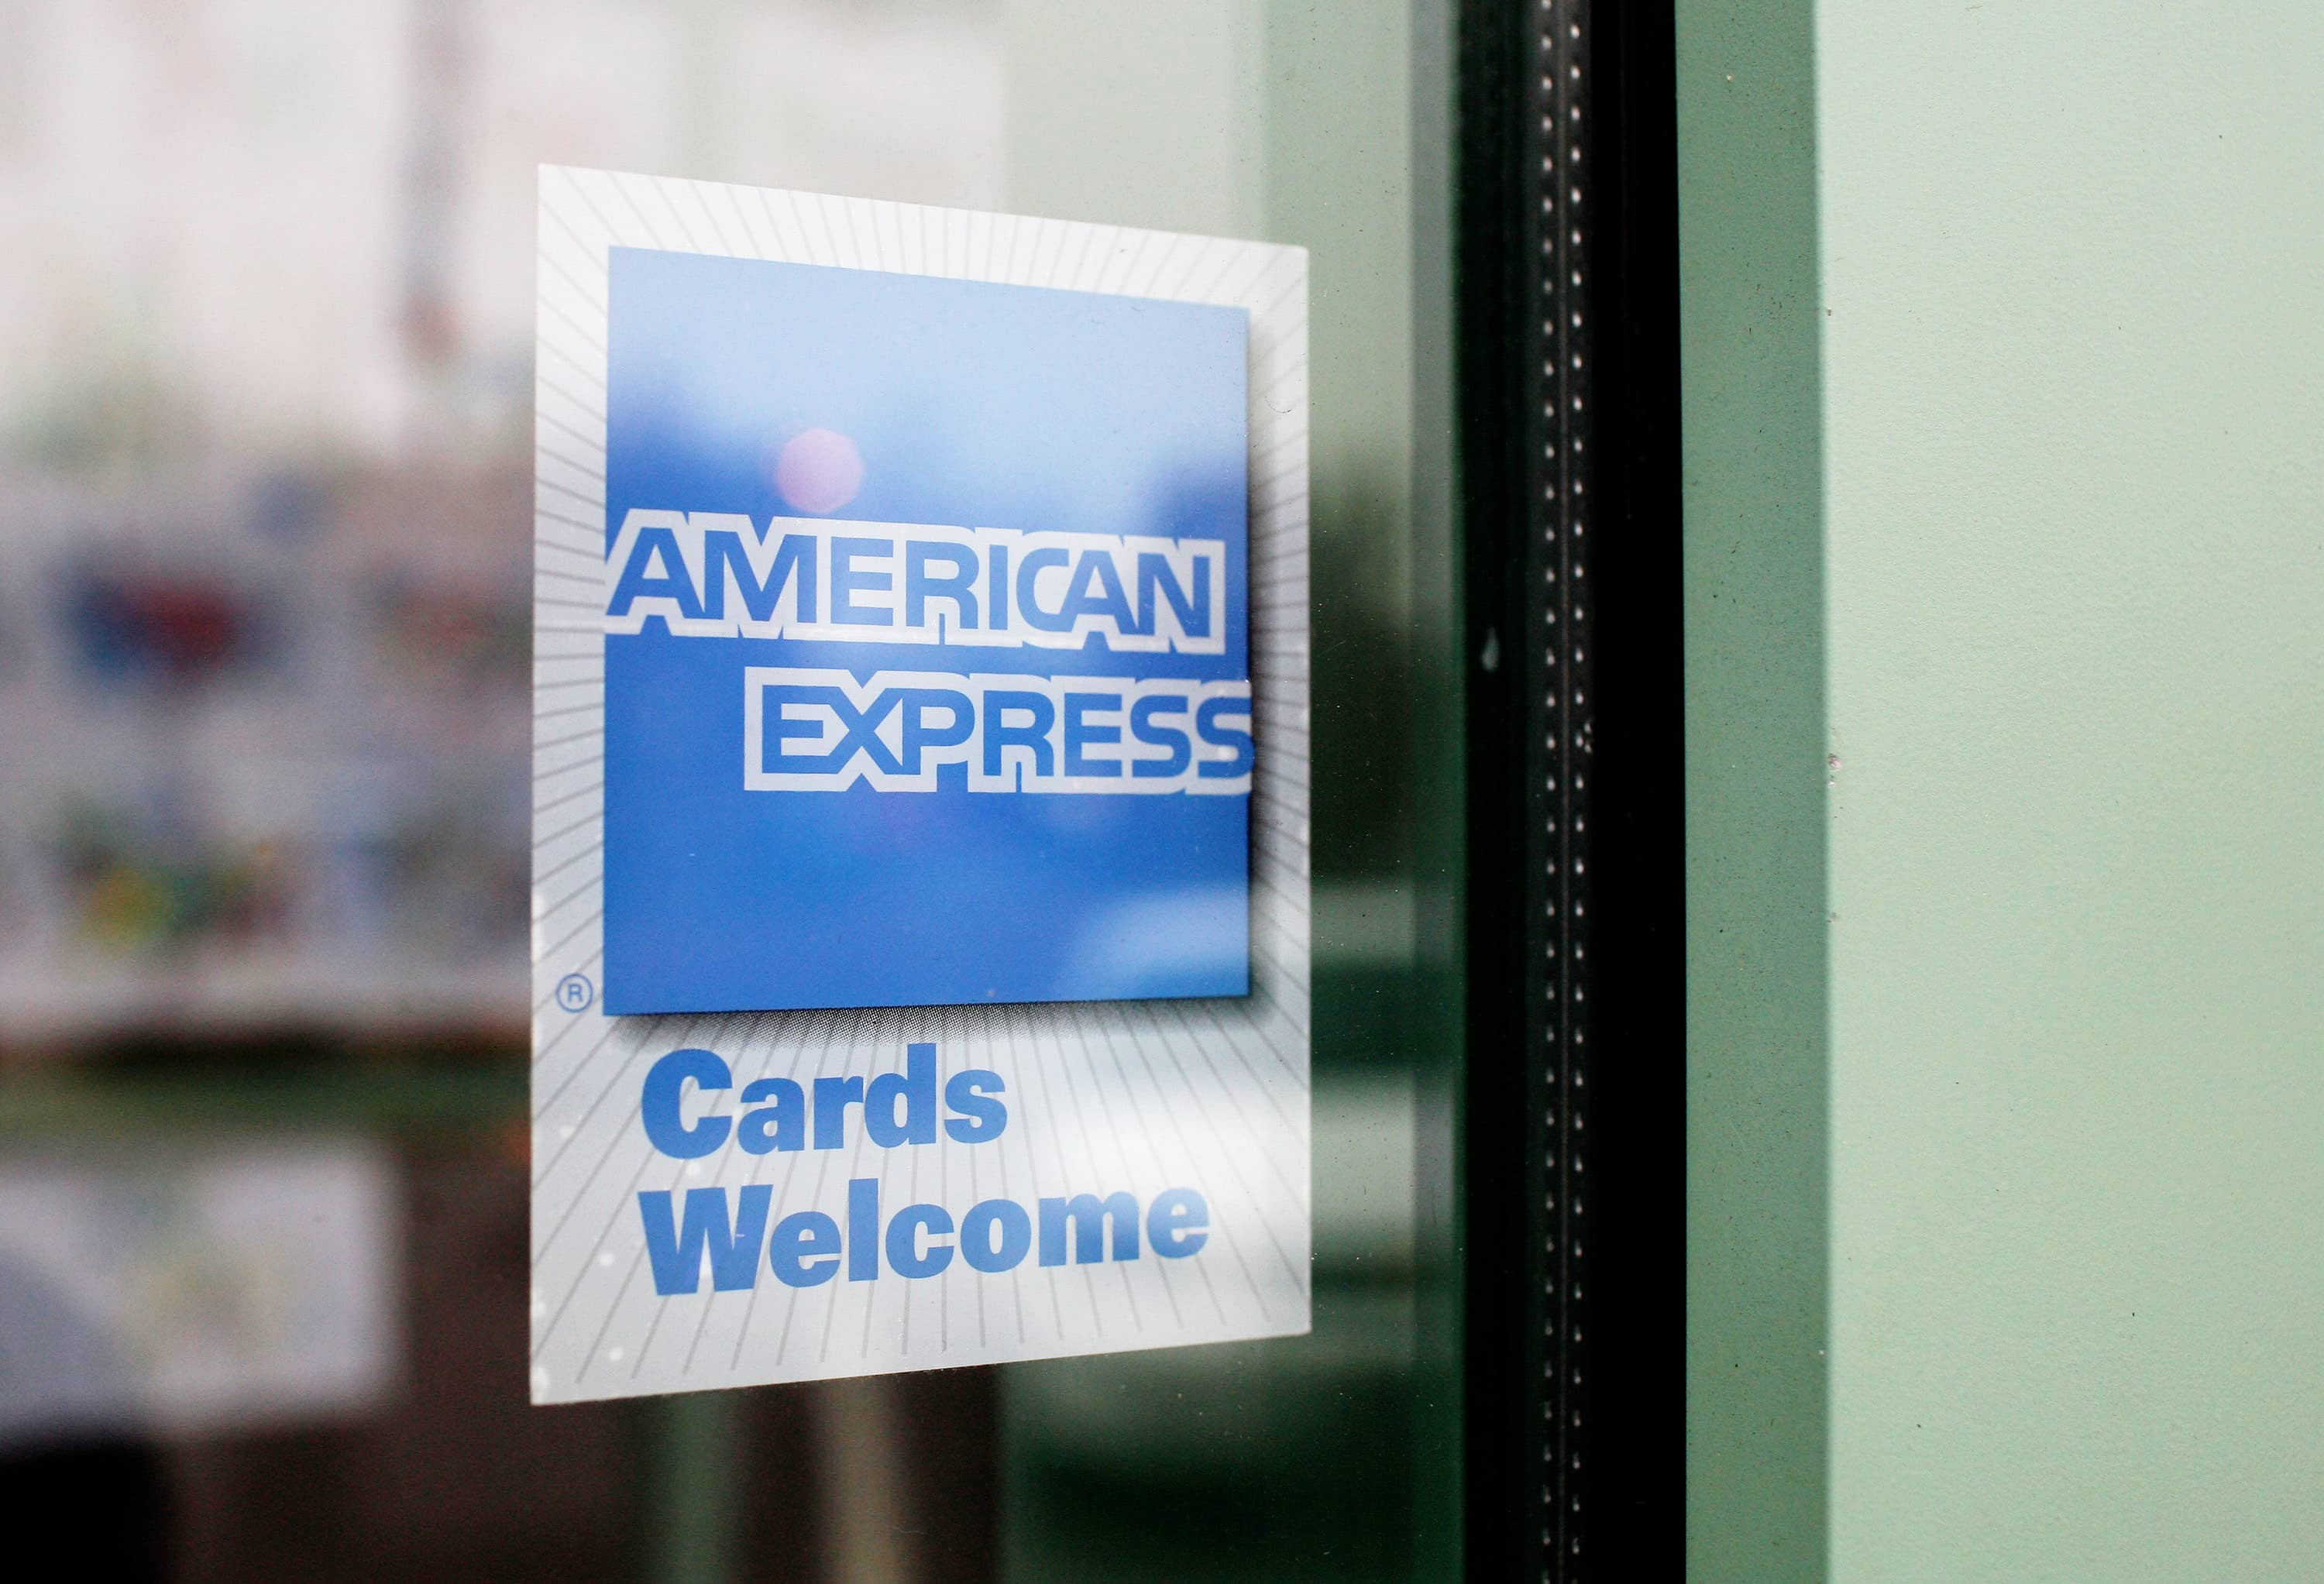 Amex To Roll Out Loyalty Program Plenti On Monday